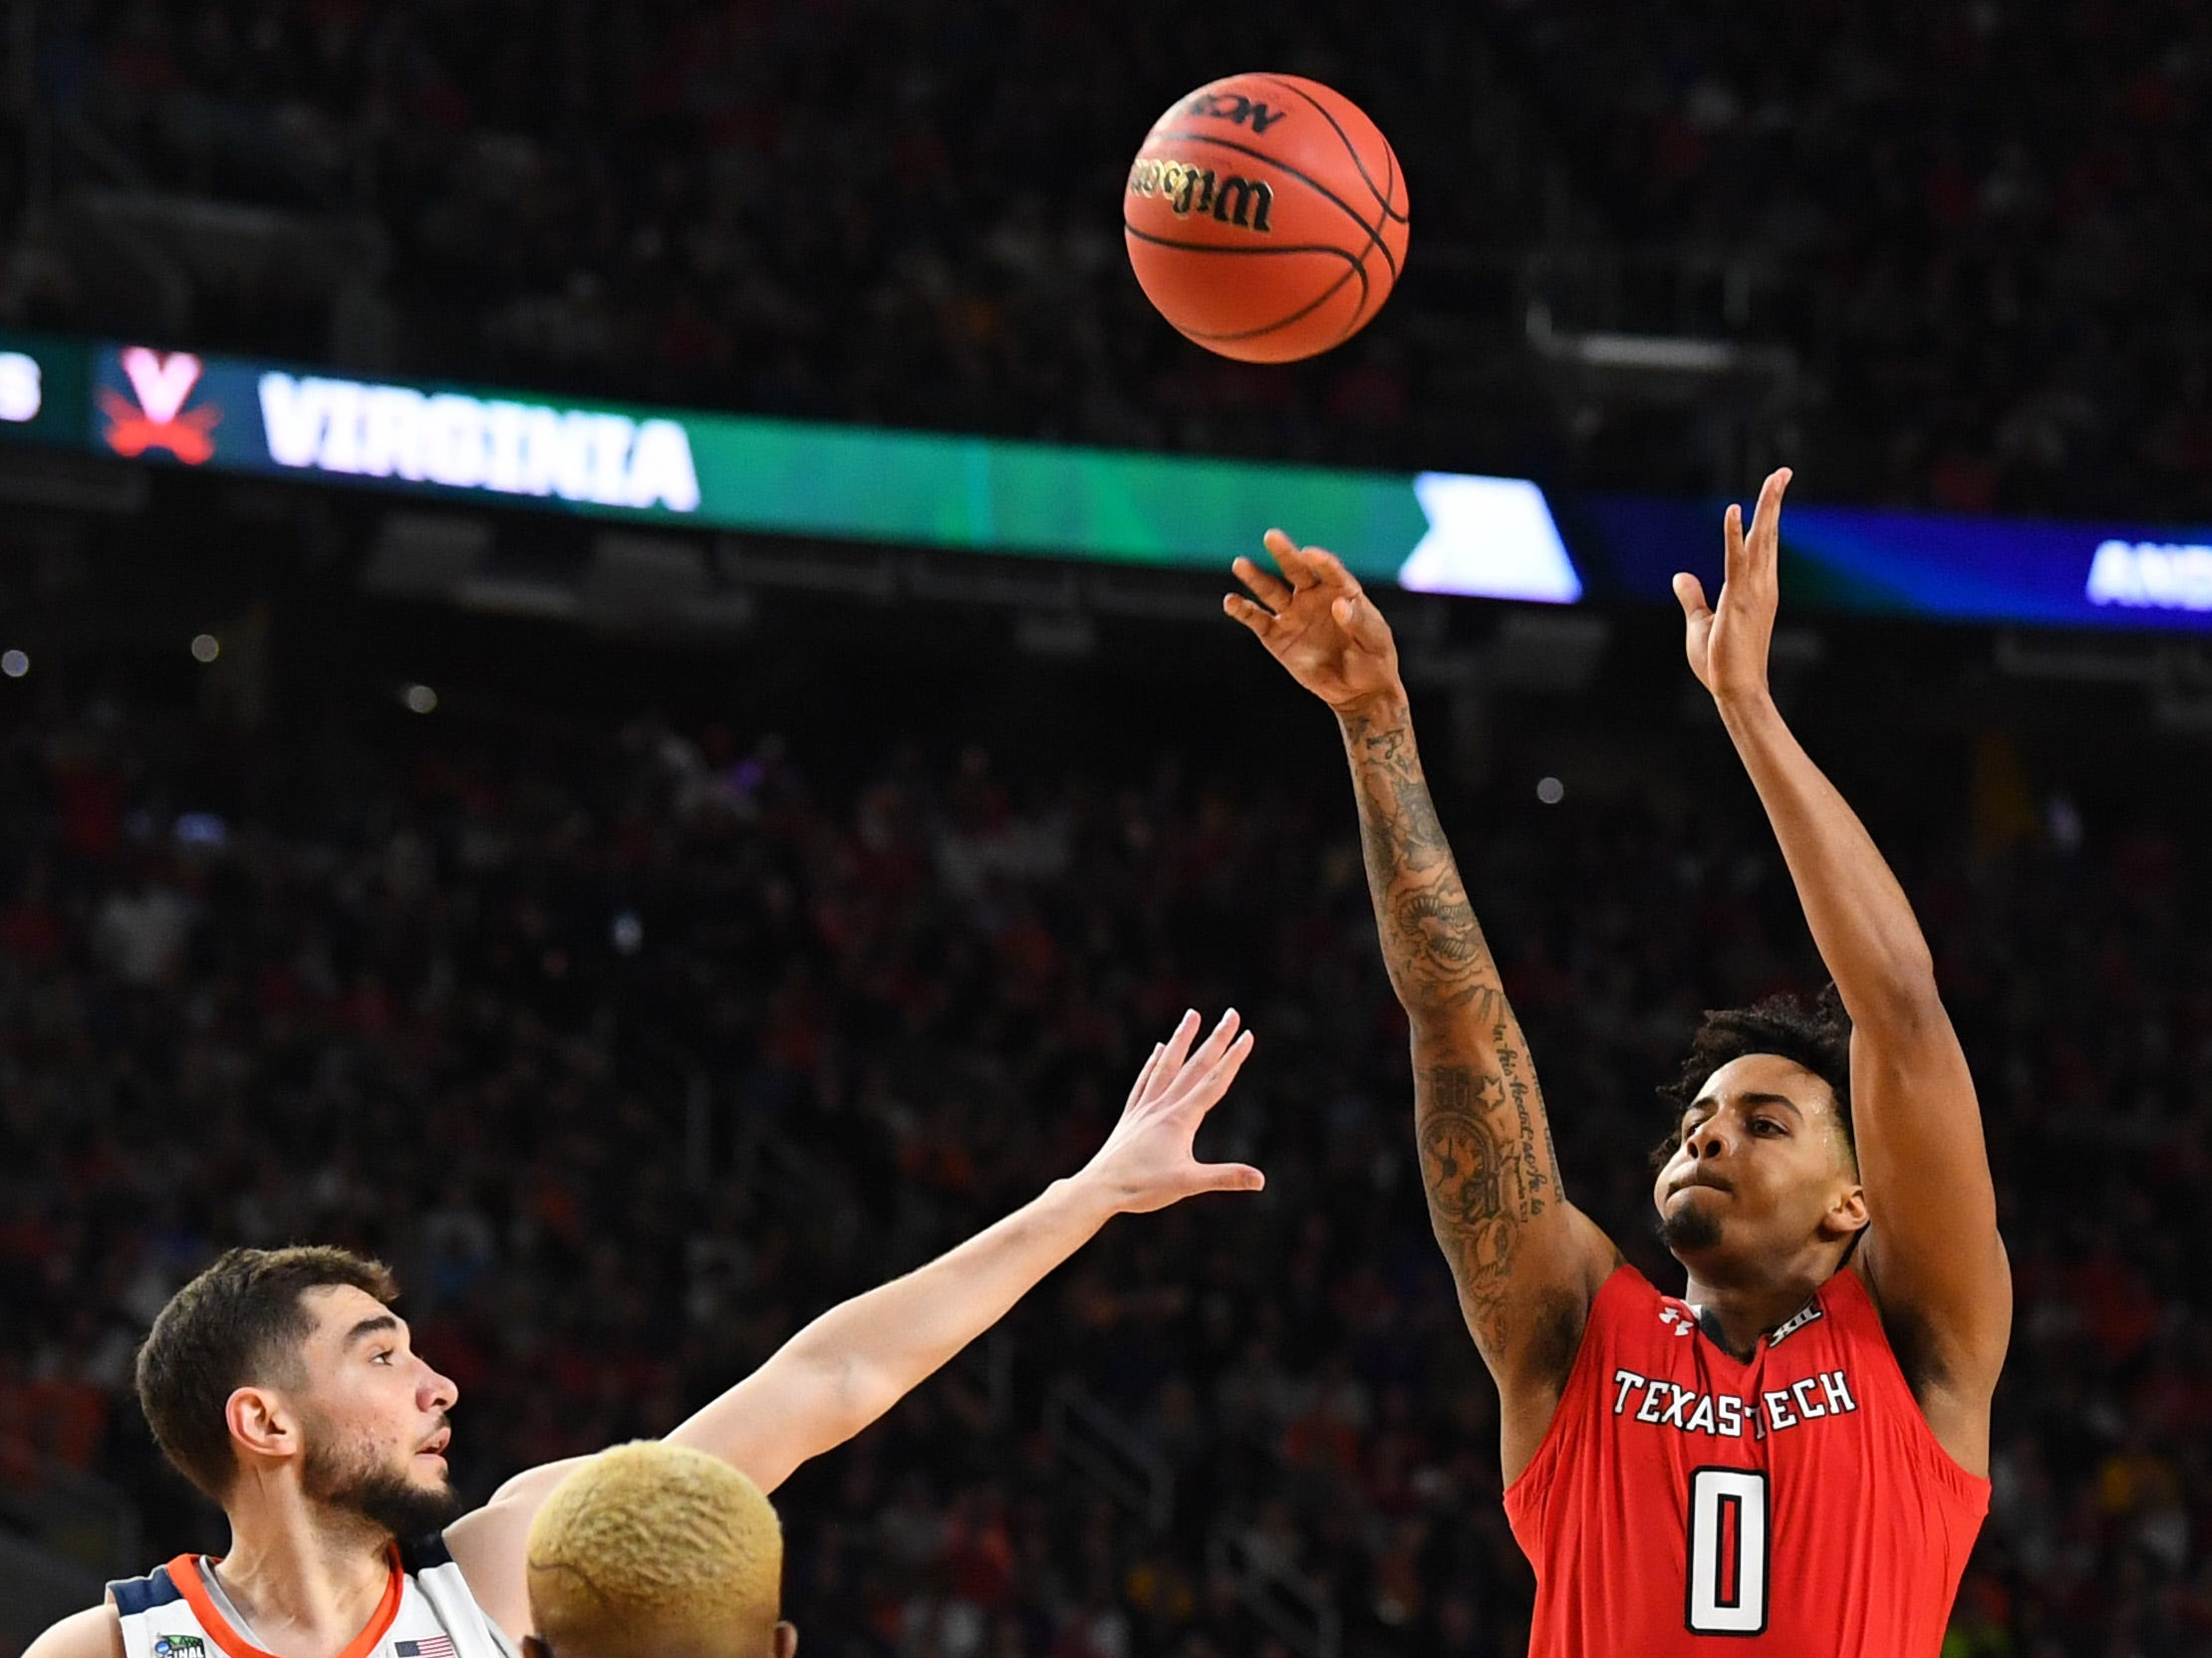 Apr 8, 2019; Minneapolis, MN, USA; Texas Tech Red Raiders guard Kyler Edwards (0) shoots the ball over Virginia Cavaliers guard Ty Jerome (11) in the championship game of the 2019 men's Final Four at US Bank Stadium. Mandatory Credit: Robert Deutsch-USA TODAY Sports